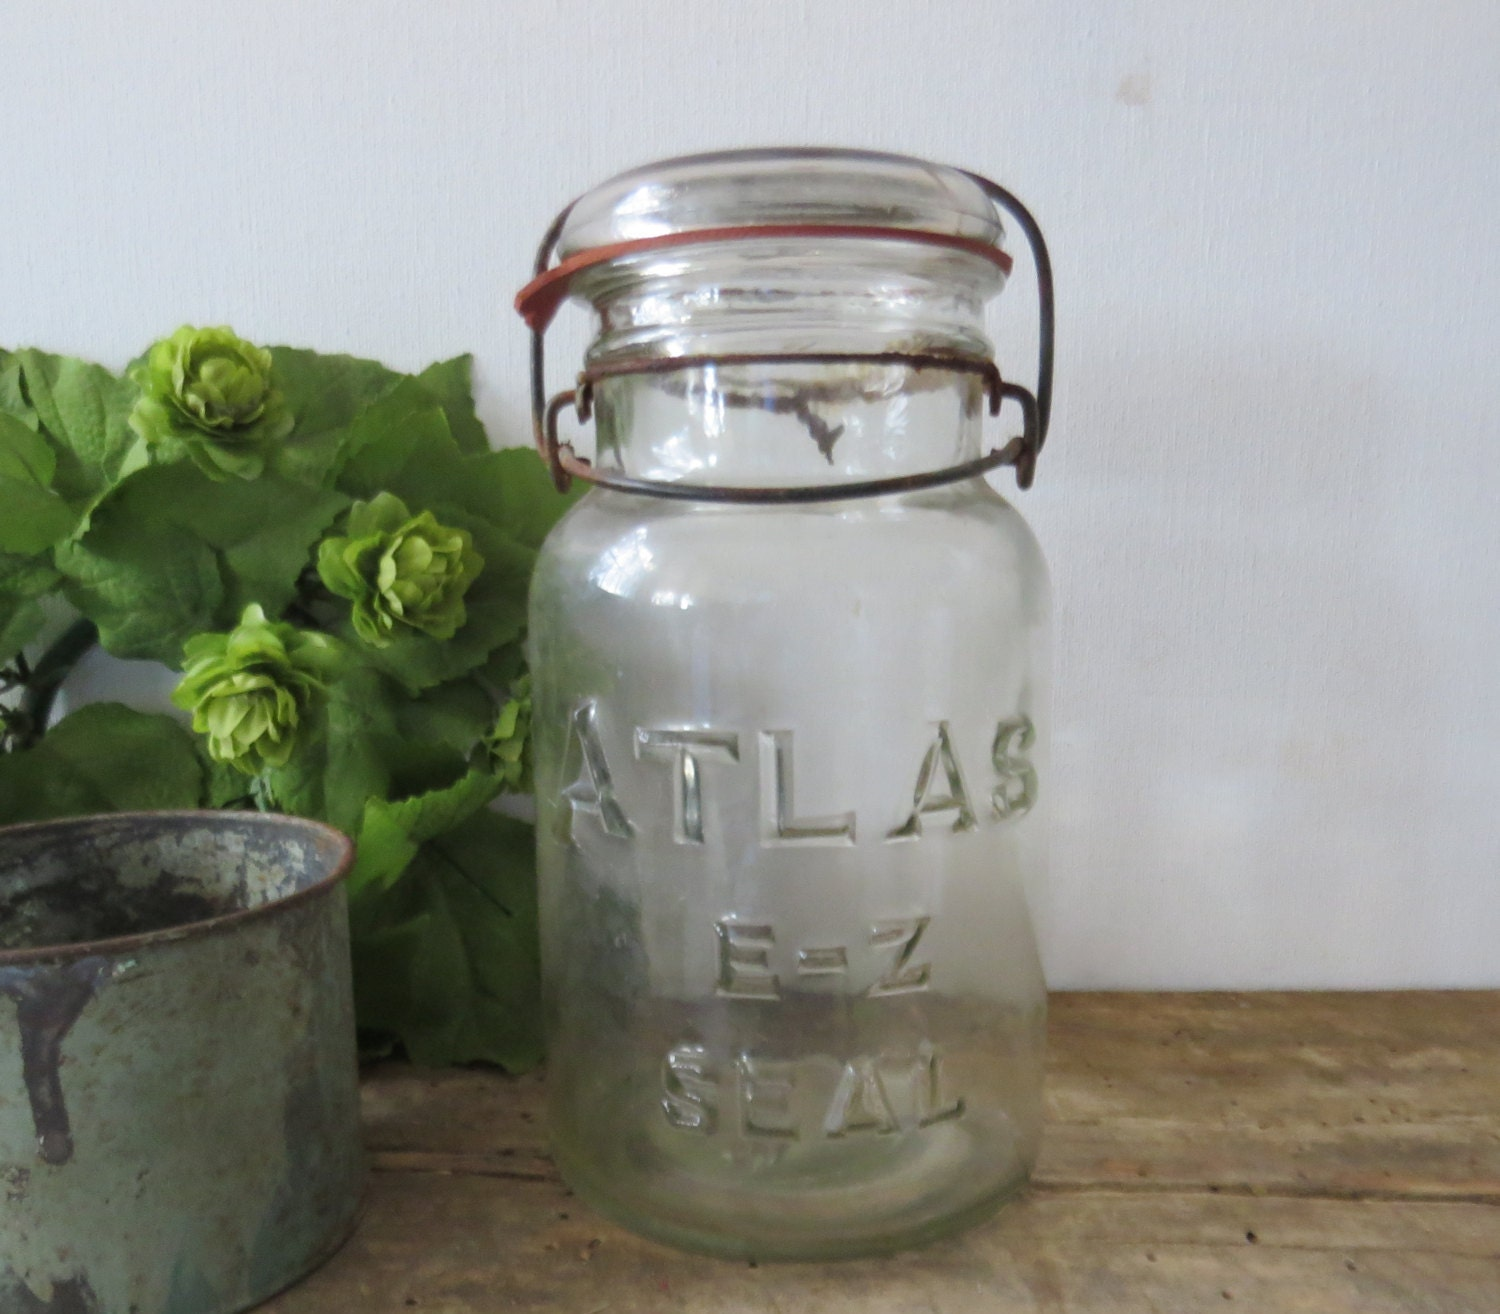 How to Date Atlas Jars